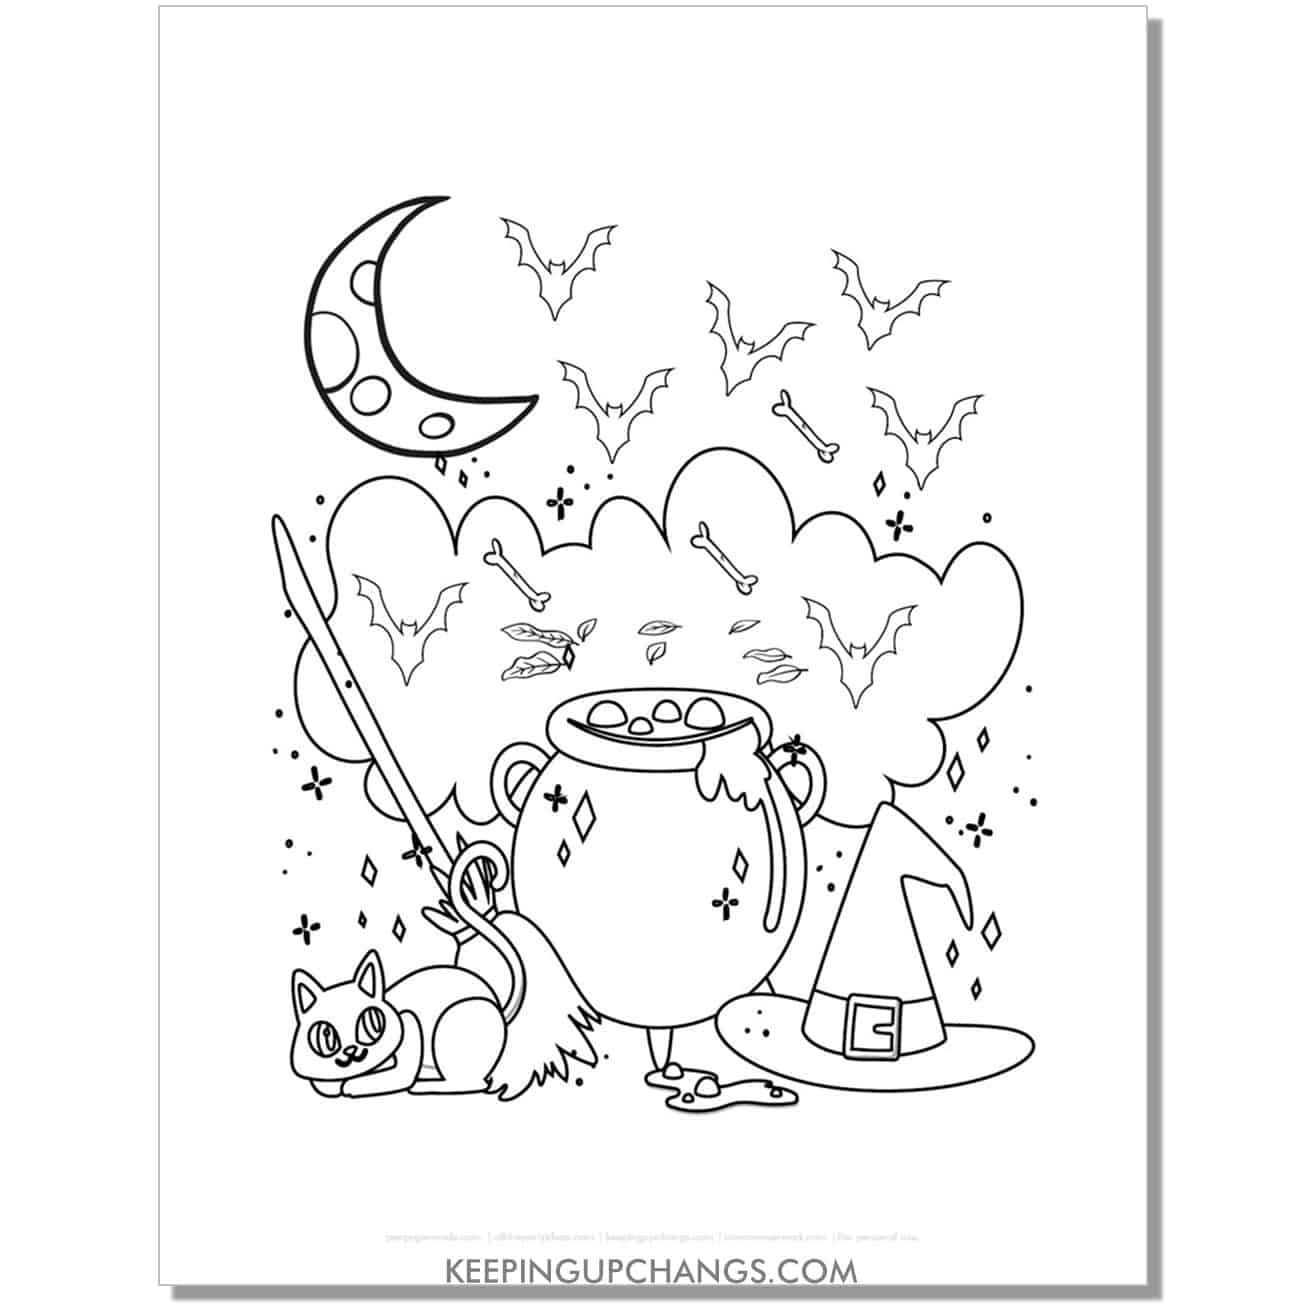 free halloween witch cauldron, hat, broom, bats, and cat coloring page.